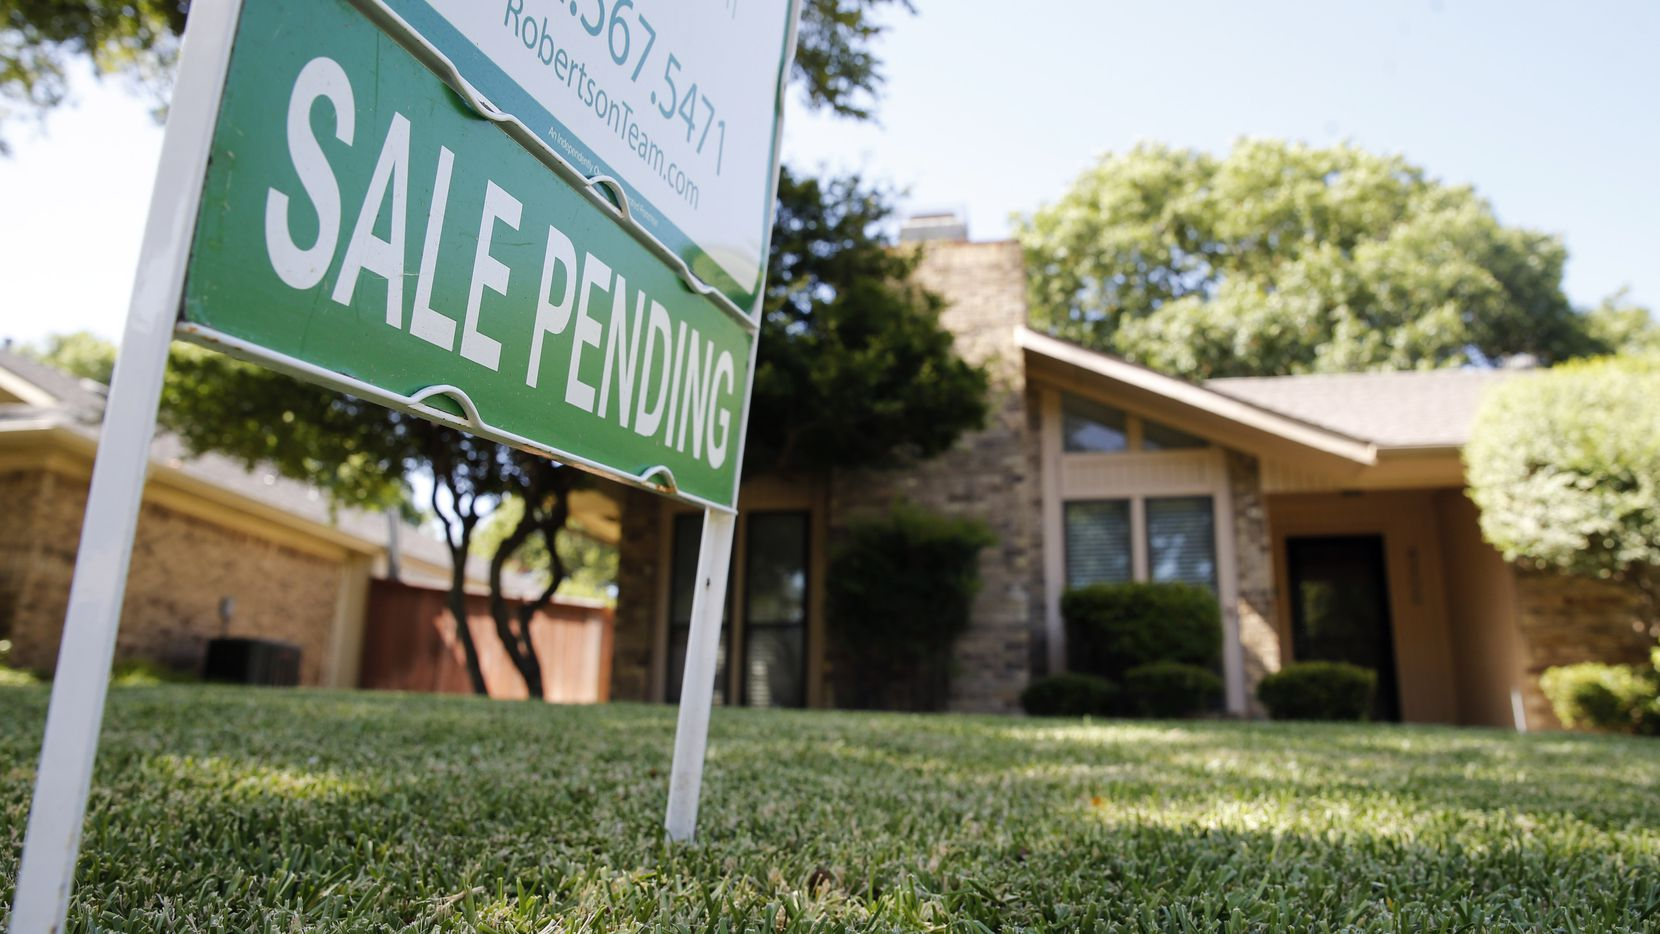 Dallas-area home prices are up 6.5% from 2019 levels.